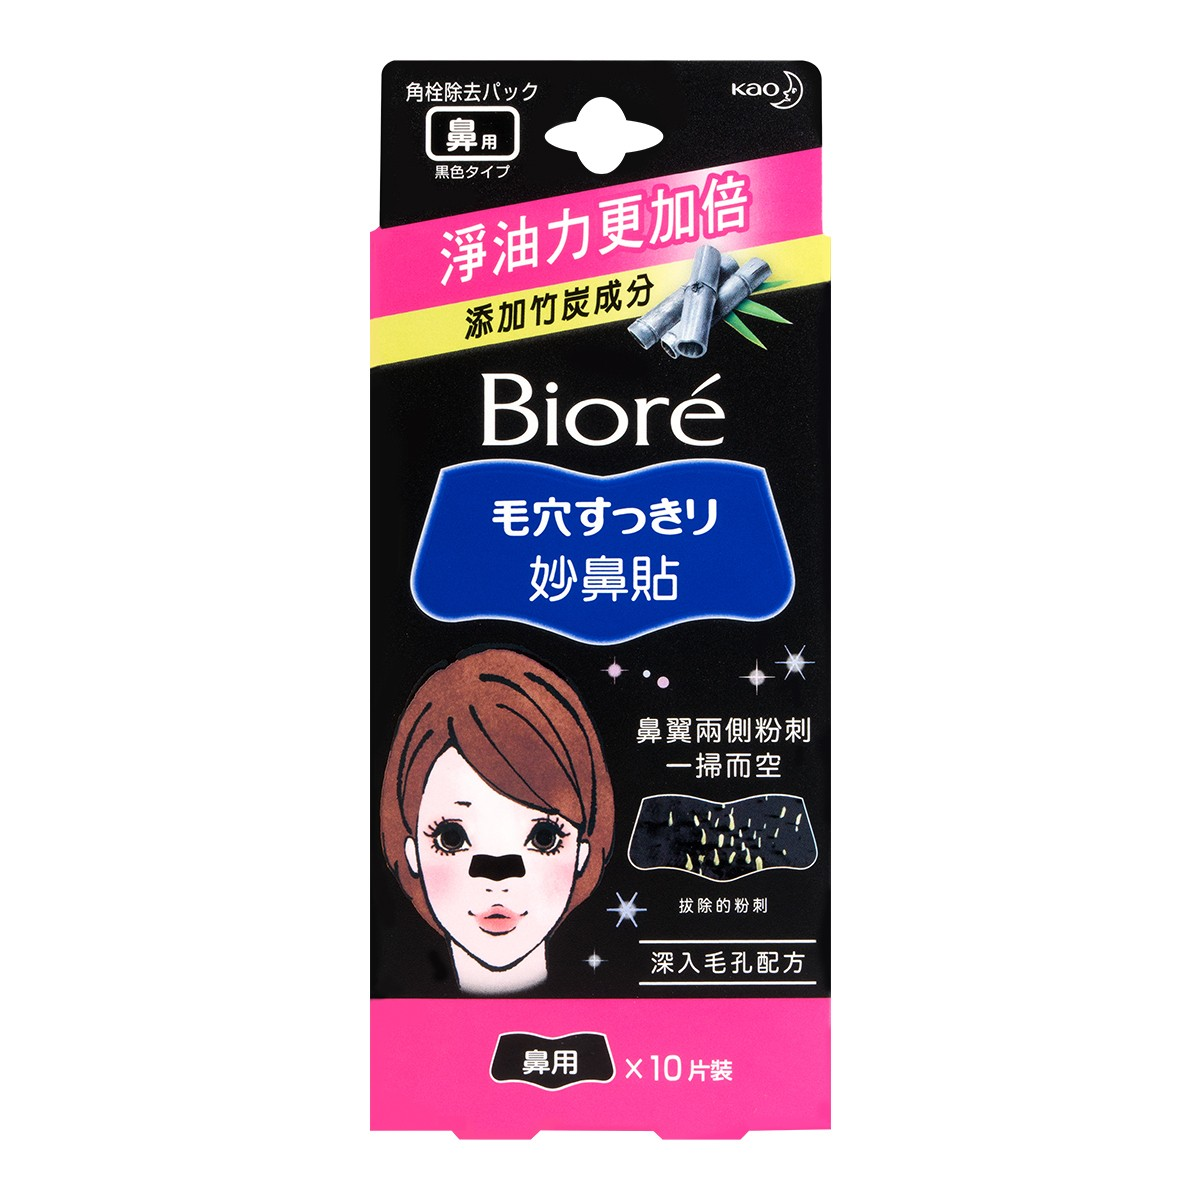 KAO BIORE Nose Pore Cleansing Strips Black 10 Pieces